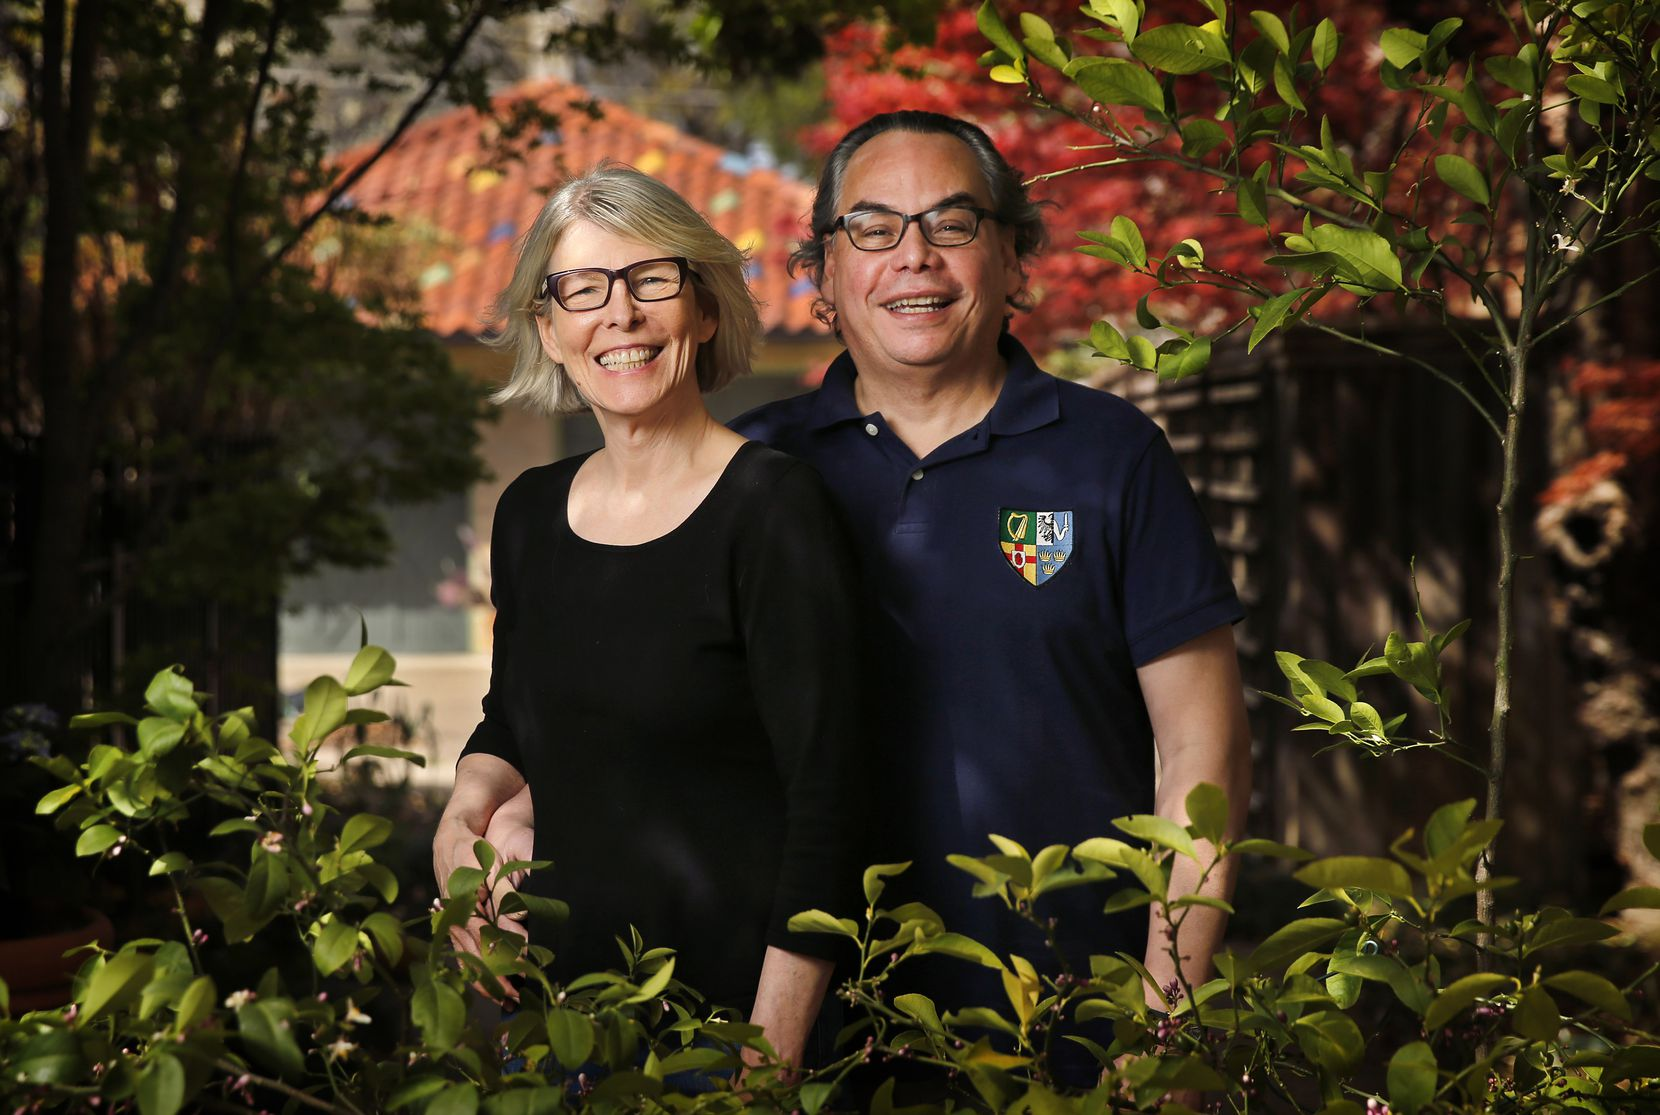 """Everything is fresh,"" says Dr. Otto Marquez of spring. ""The air smells of flowers, of different plants. ... It's a new start."" Marquez is pictured with his wife, Kim."